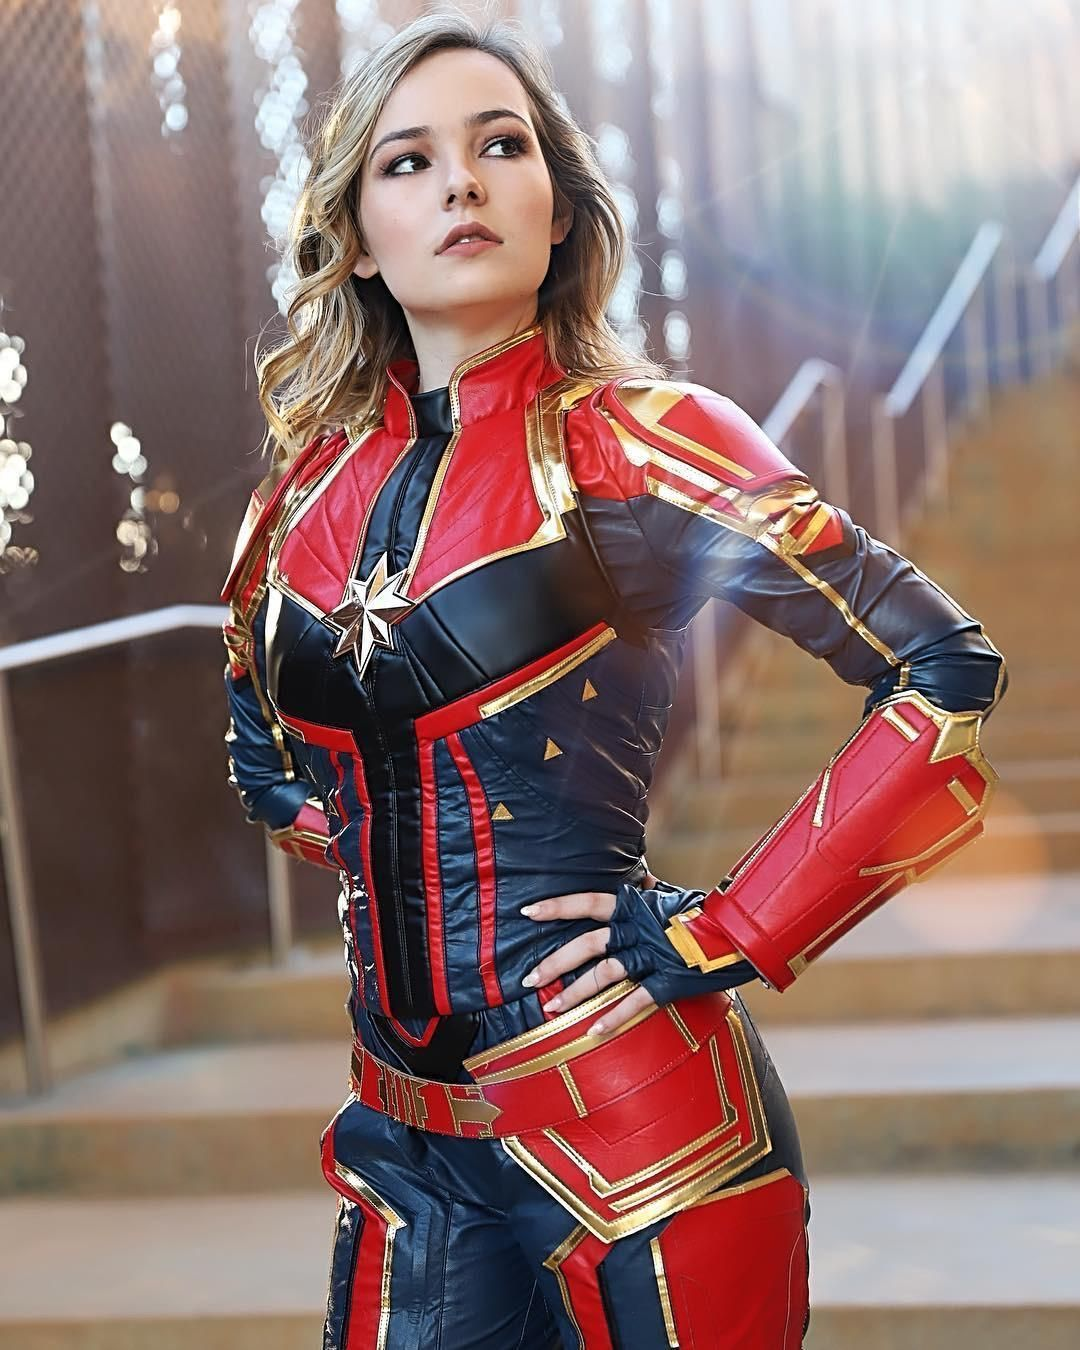 Pin On Celebrities The costume guide to all of captain marvel / carol danvers outfits, portrayed by brie larson, in captain marvel. pin on celebrities